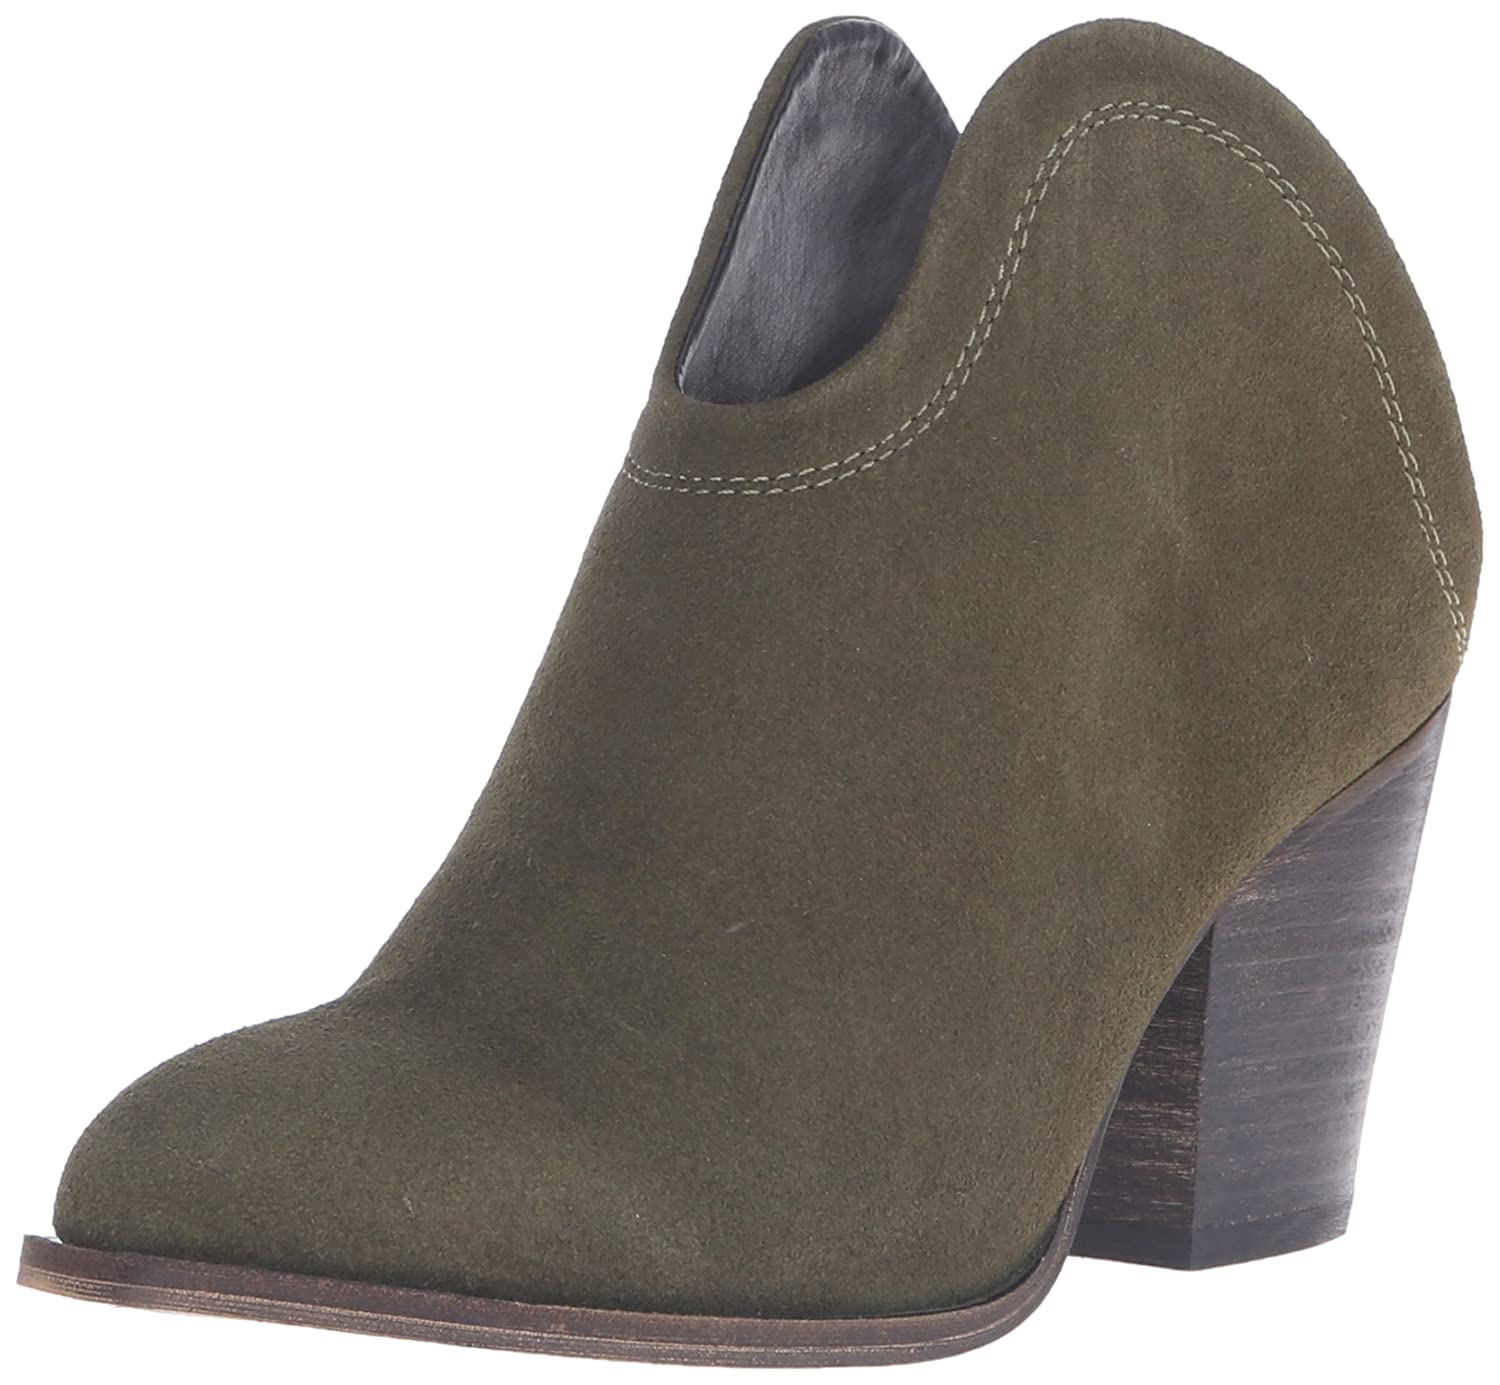 Chinese Laundry Women's Kelso Bootie B019TO9LGQ 5.5 B(M) US Olive Suede